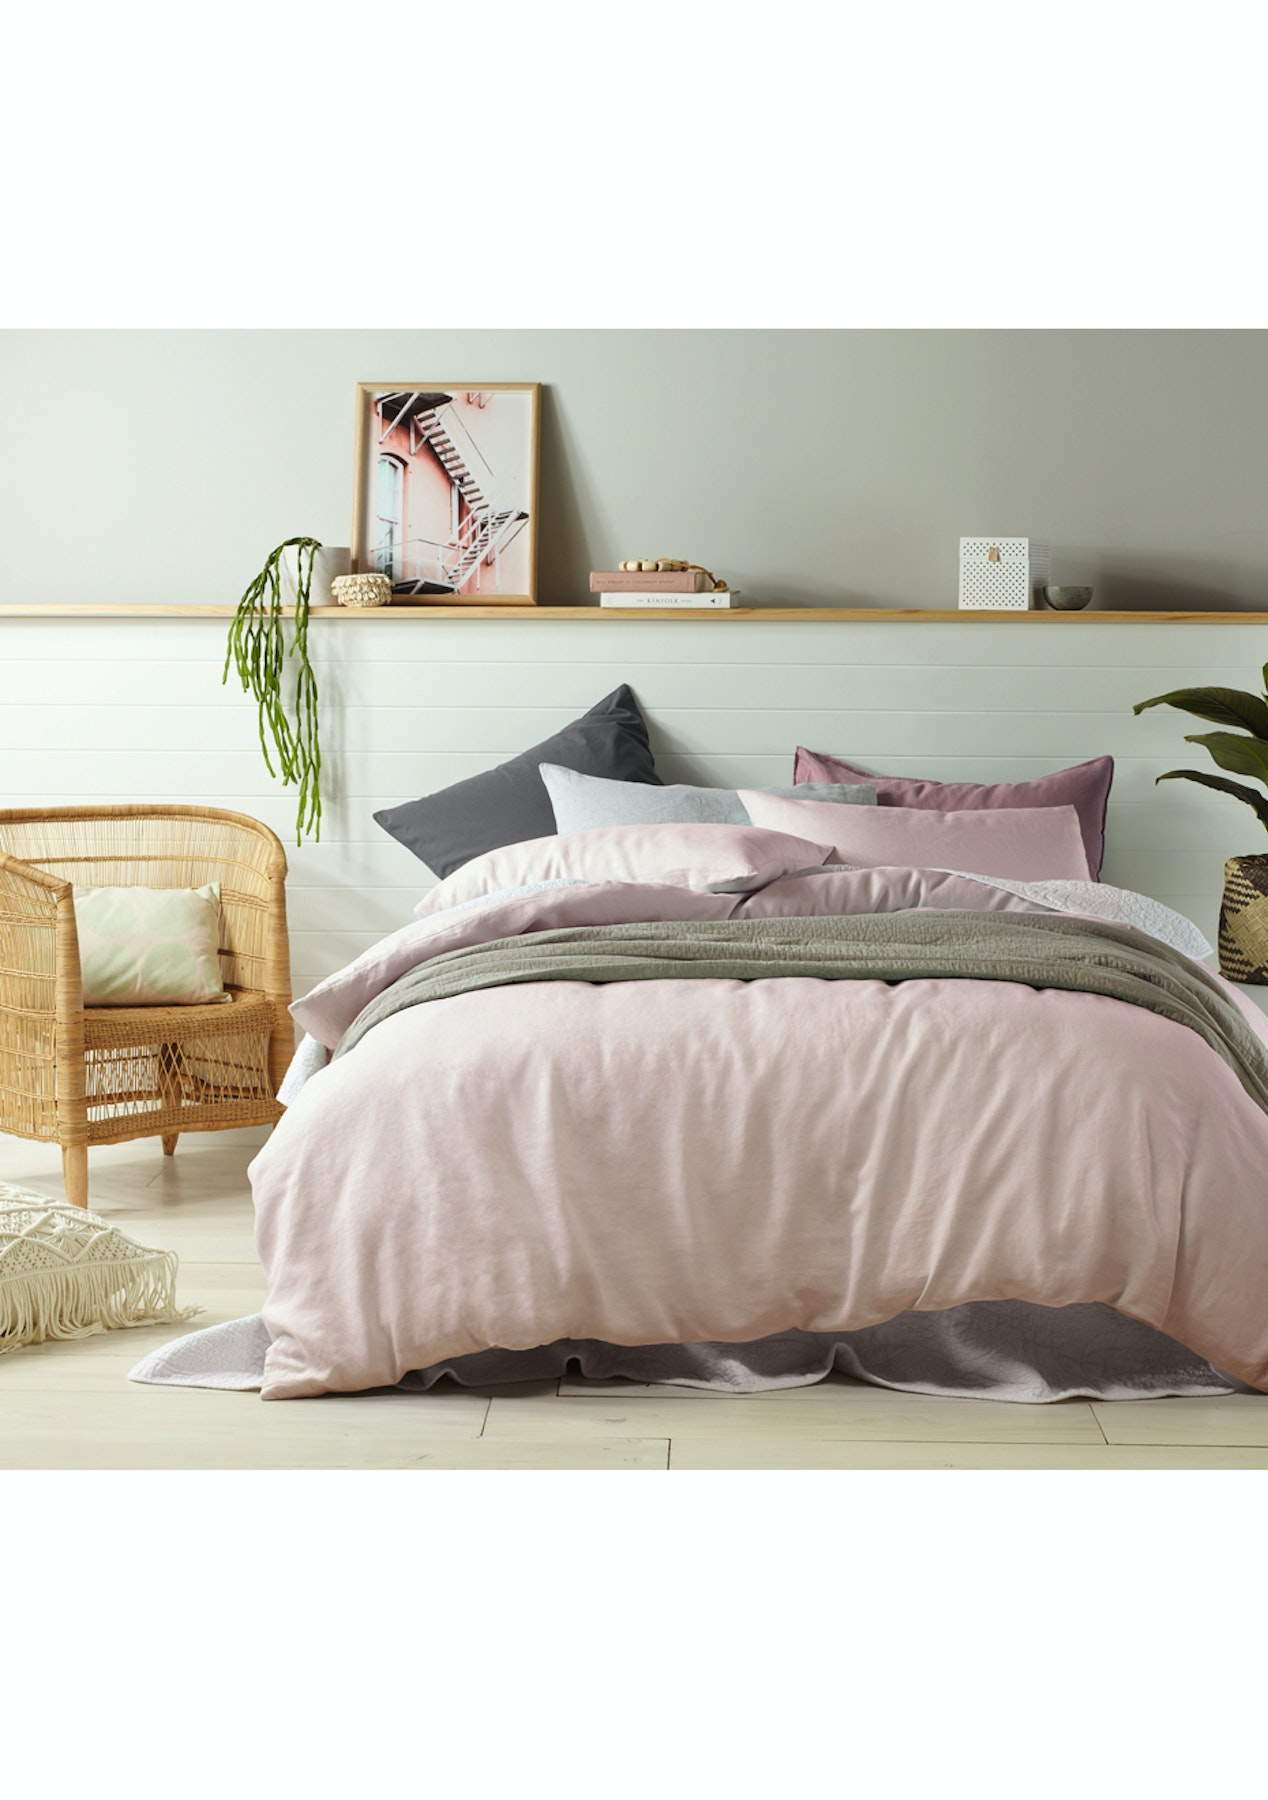 made from linen brand quality this paradise sumptuous with duvet cotton striking detail the thread featuring bed pin has and cover floral pink dunelm a blush bedroom count is dorma collection